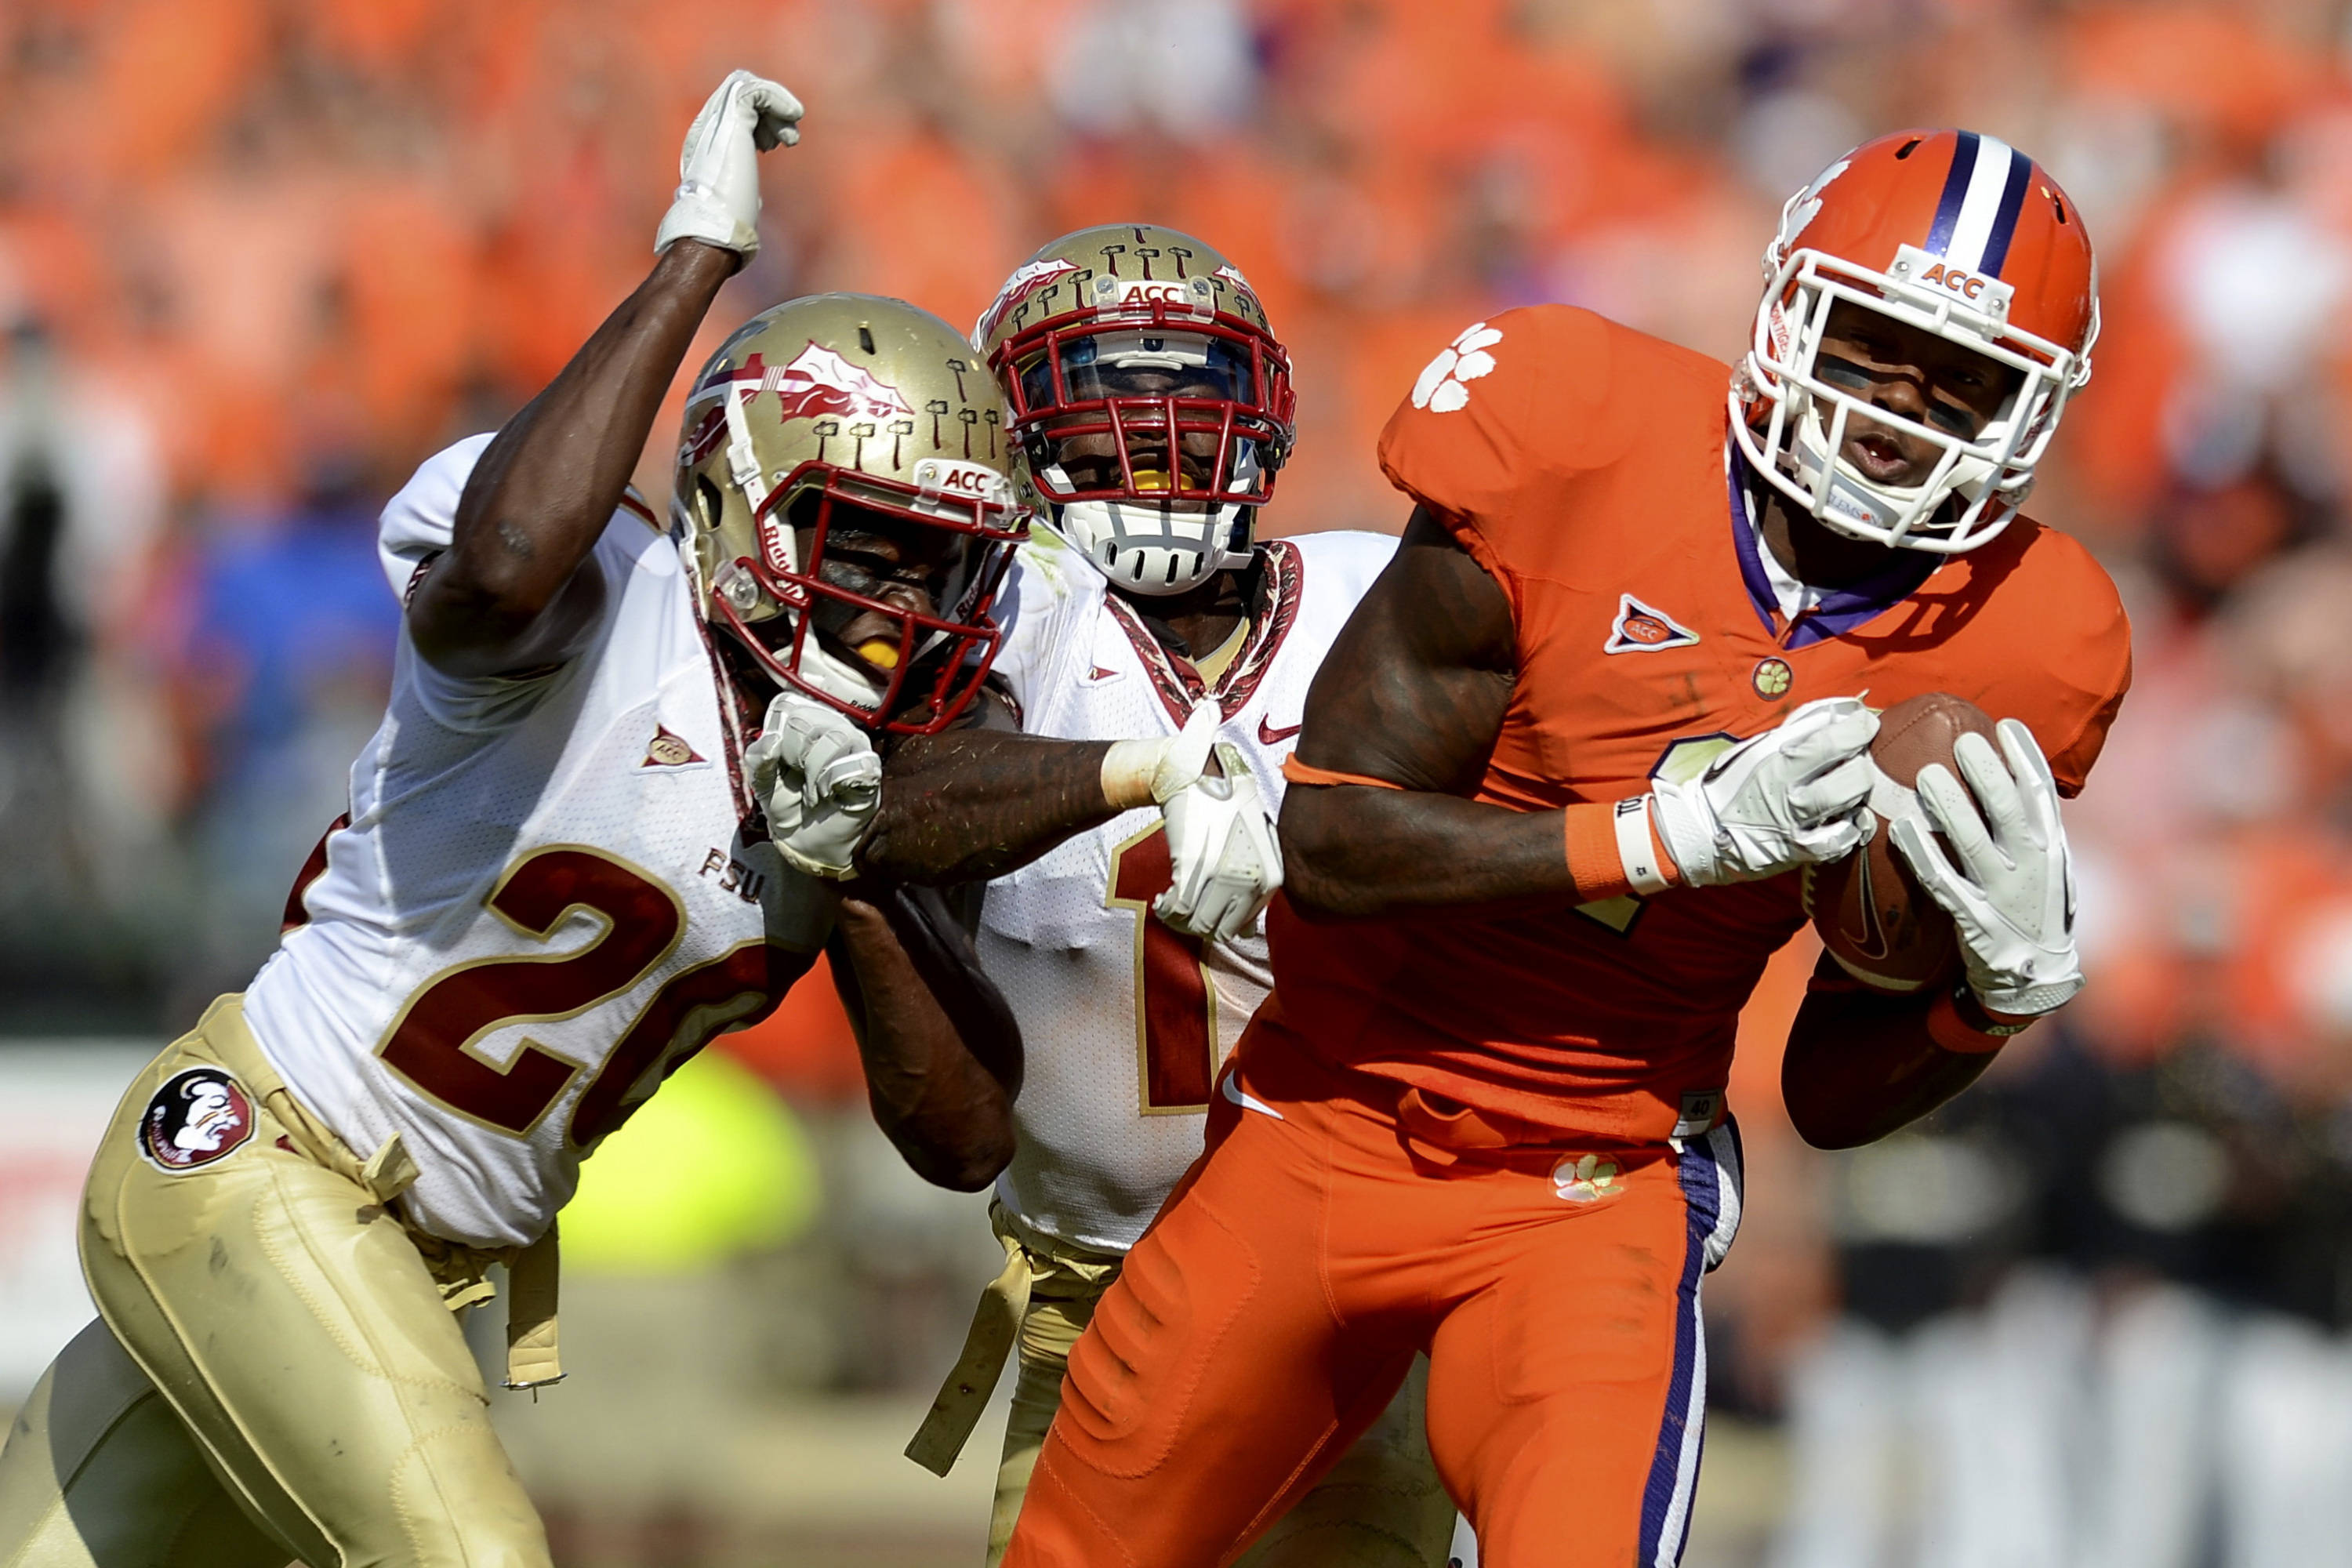 Clemson wide receiver Martavis Bryant makes a 33 yard reception over Florida State defenders, Lamarcus Joyner (20) and Mike Harris (1) during an NCAA college football game Saturday, Sept. 24, 2011, at Memorial Stadium in Clemson, S.C.  (AP Photo/ Richard Shiro)